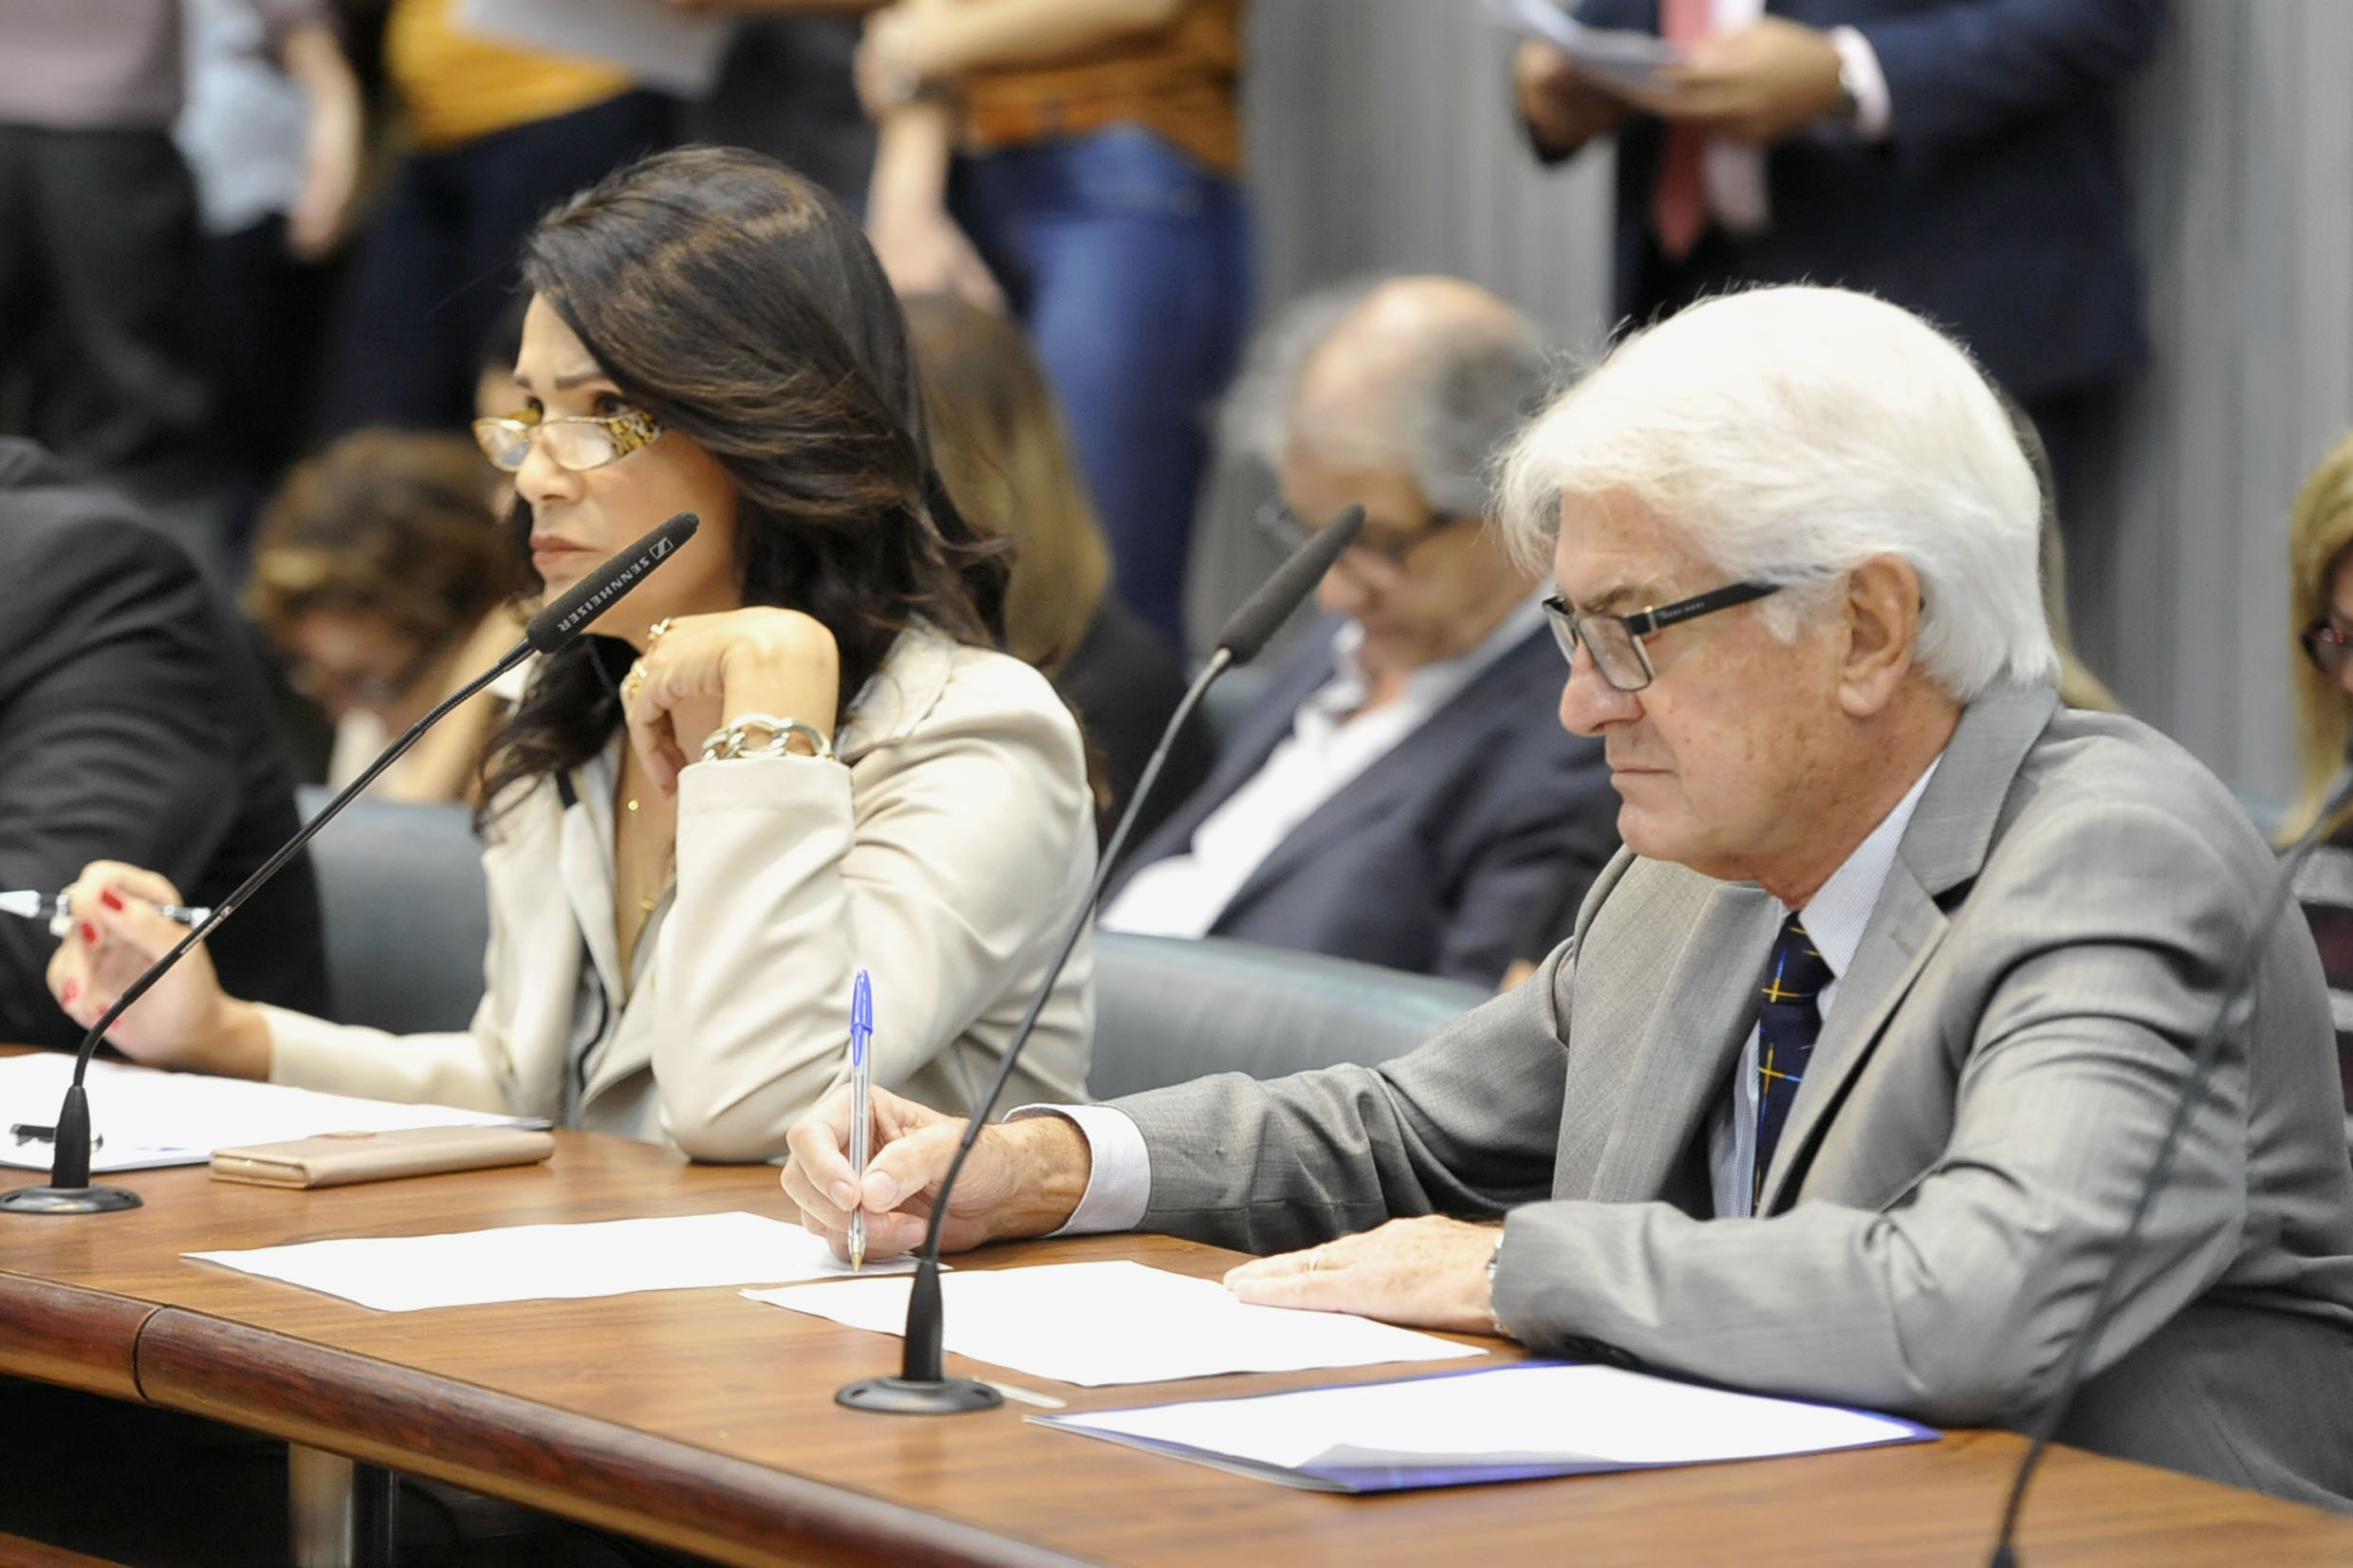 Parlamentares na comissão<a style='float:right' href='https://www3.al.sp.gov.br/repositorio/noticia/N-05-2019/fg234070.jpg' target=_blank><img src='/_img/material-file-download-white.png' width='14px' alt='Clique para baixar a imagem'></a>